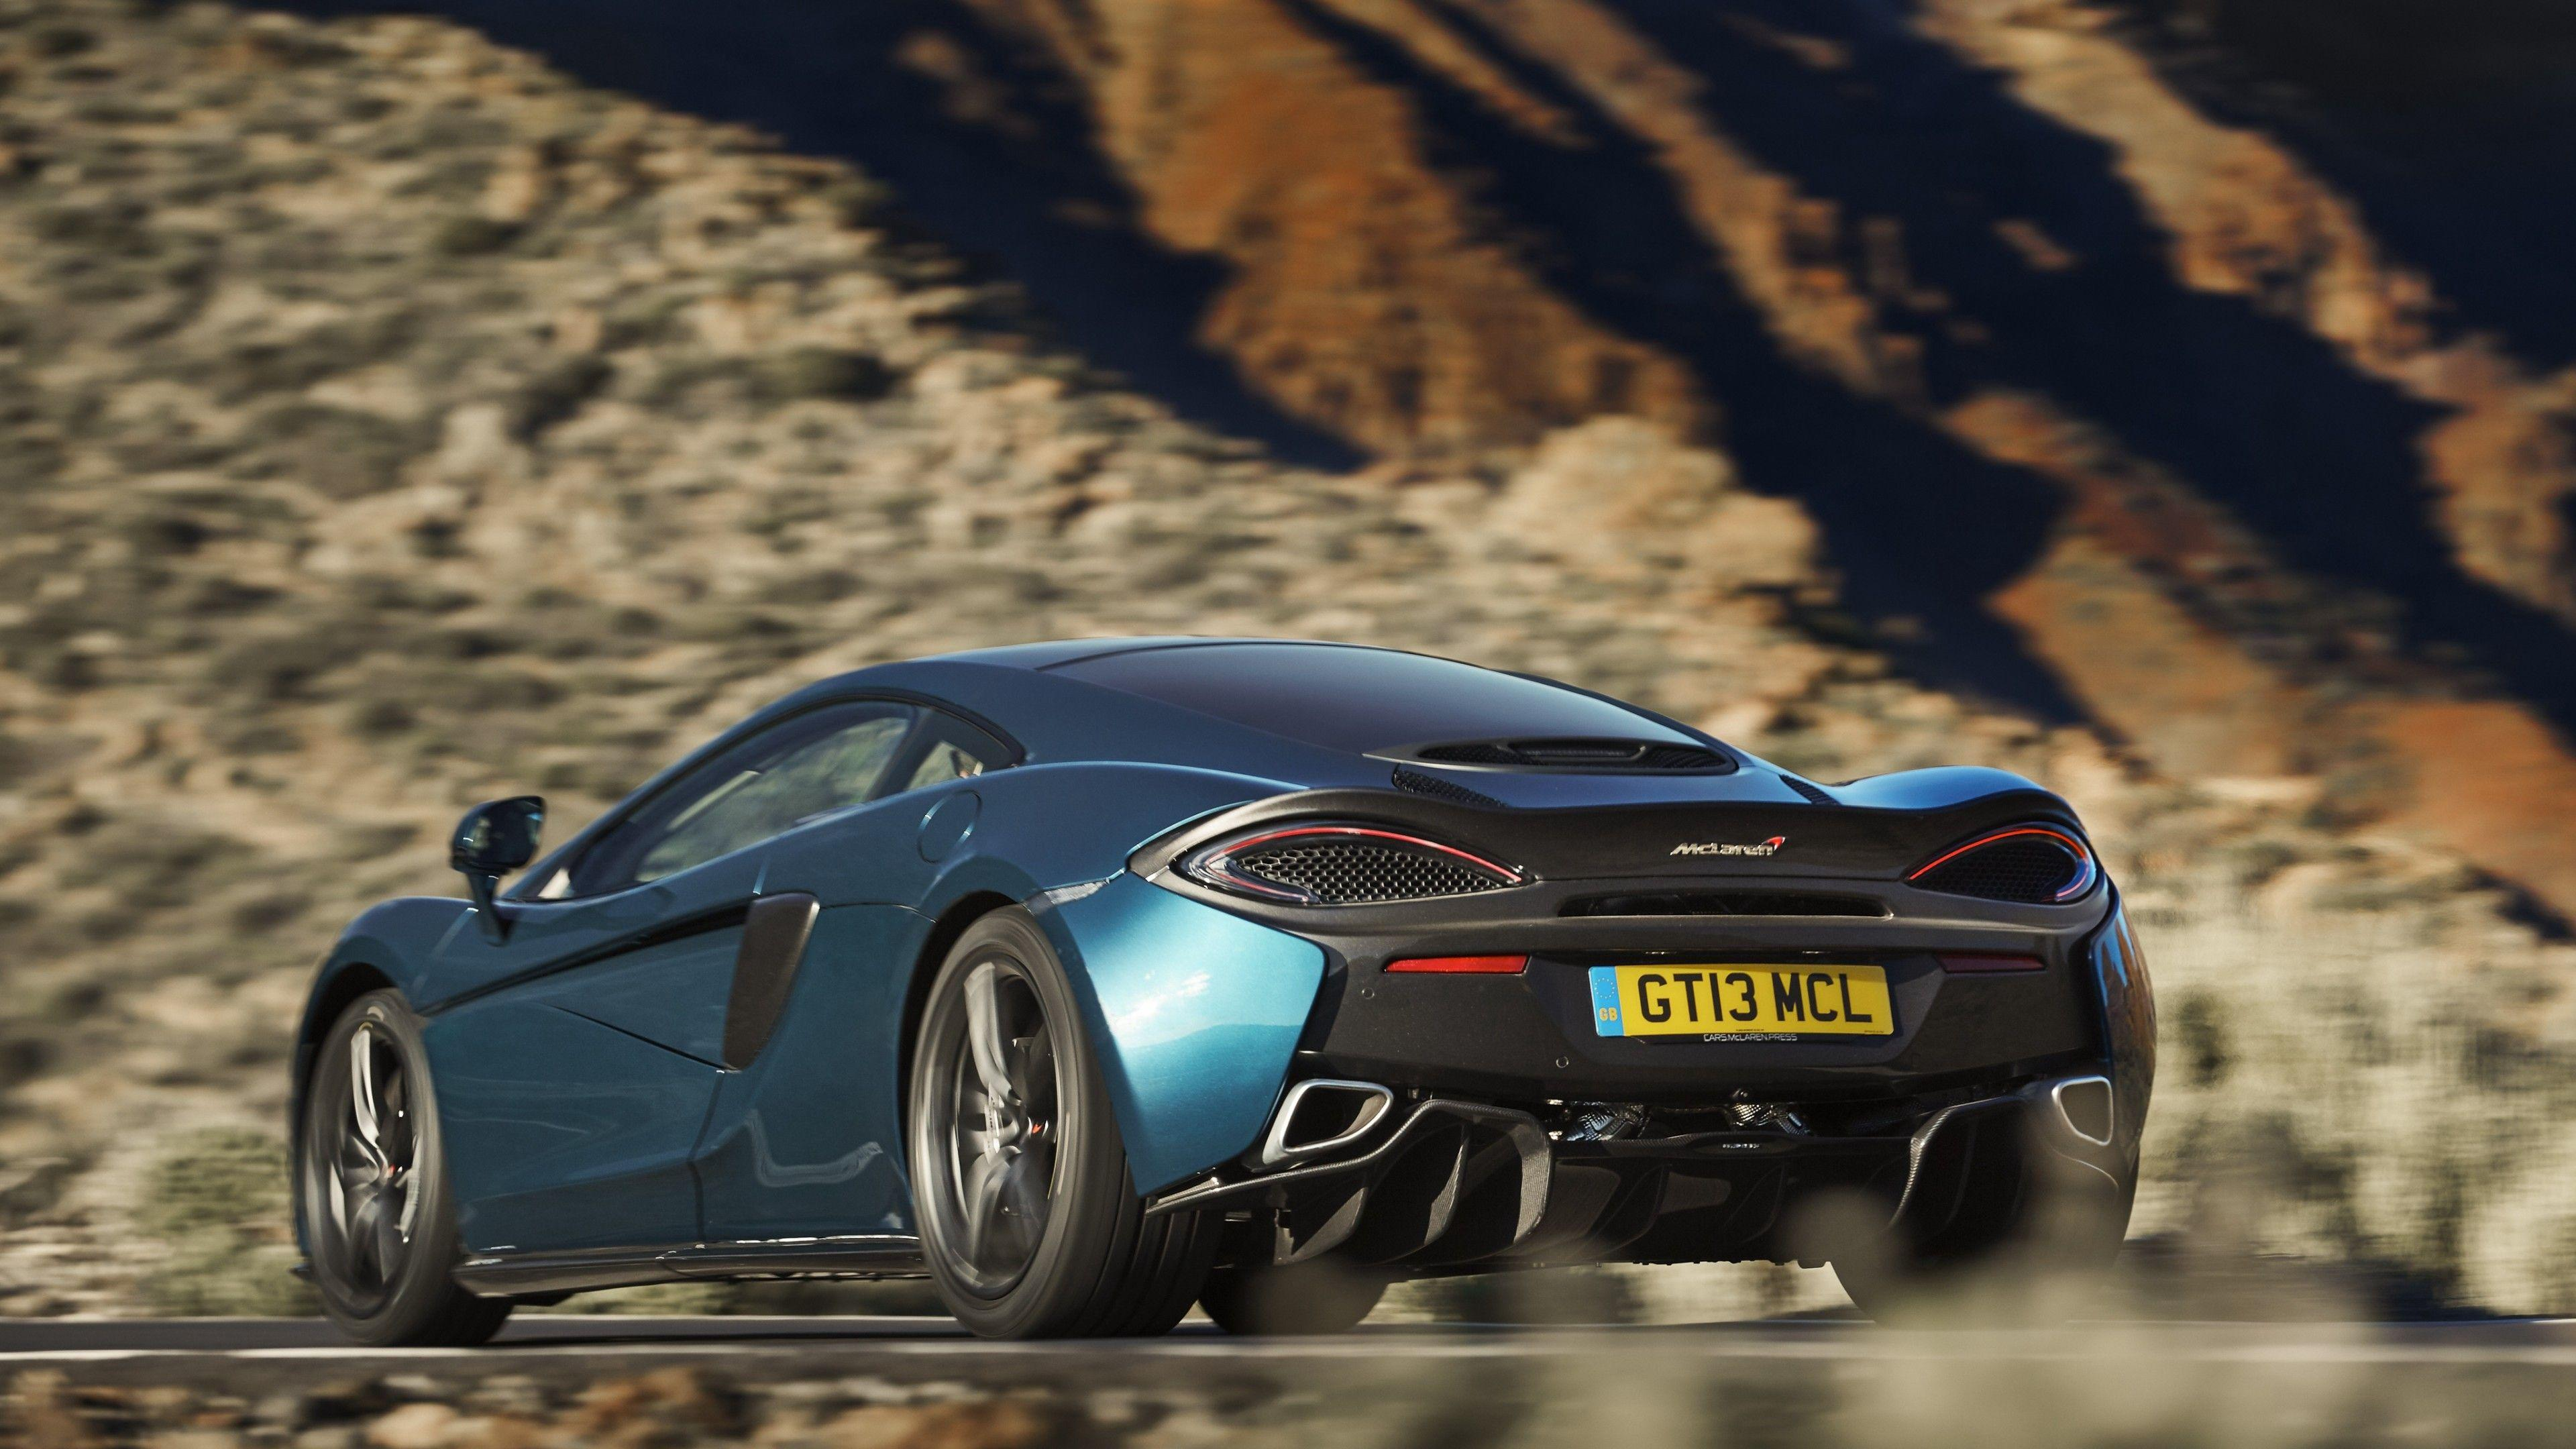 Download 3840x2160 Mclaren 570gt, Back View, Black And Blue, Cars ...